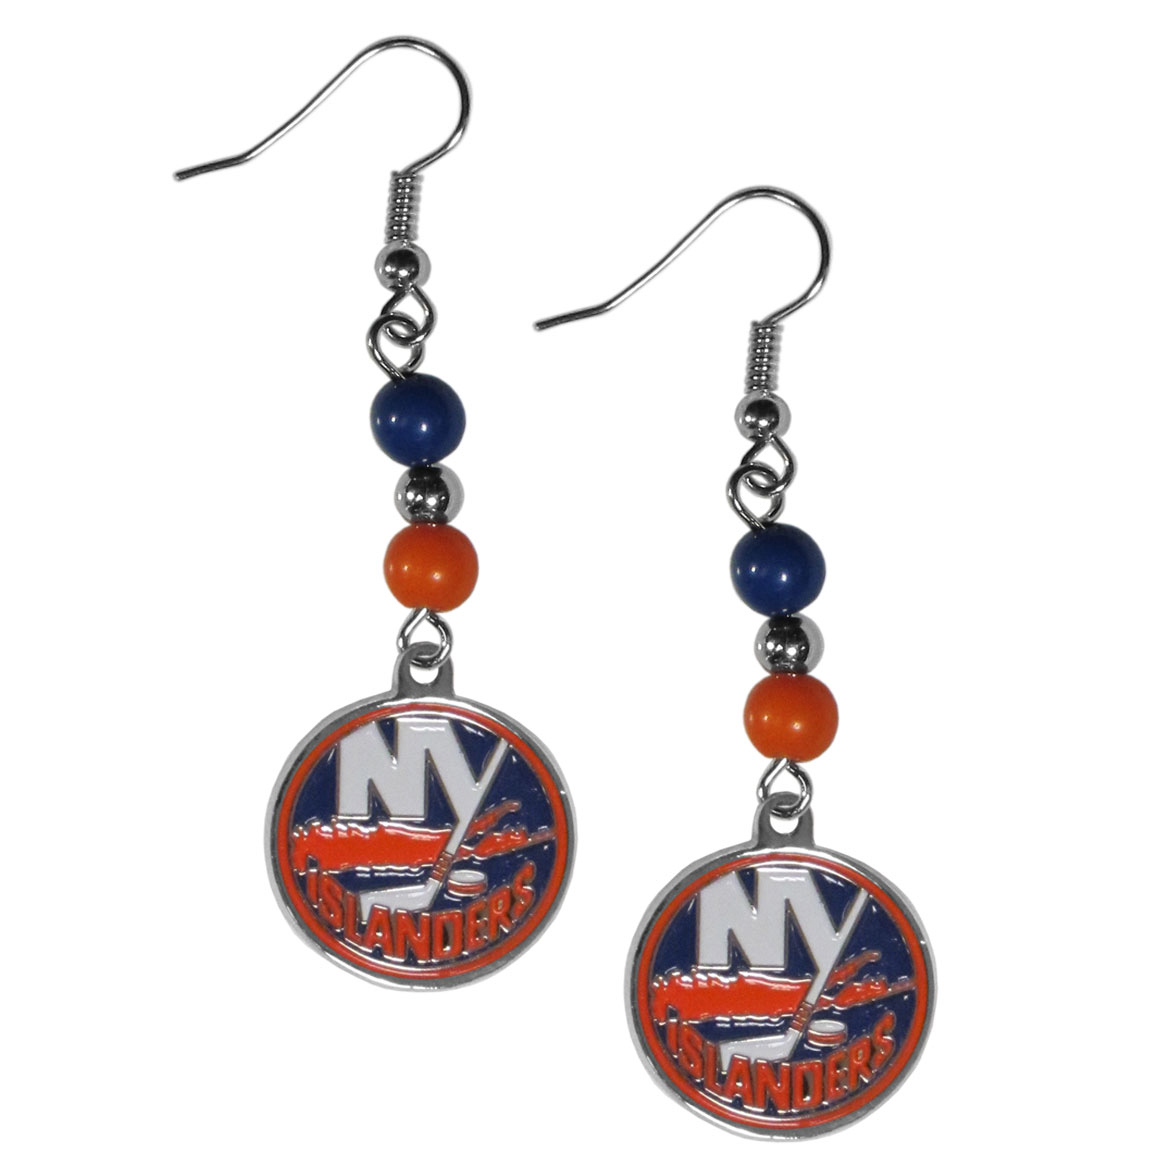 New York Islanders® Fan Bead Dangle Earrings - Love your team, show it off with our New York Islanders® bead dangle earrings! These super cute earrings hang approximately 2 inches and features 2 team colored beads and a high polish team charm. A must have for game day!